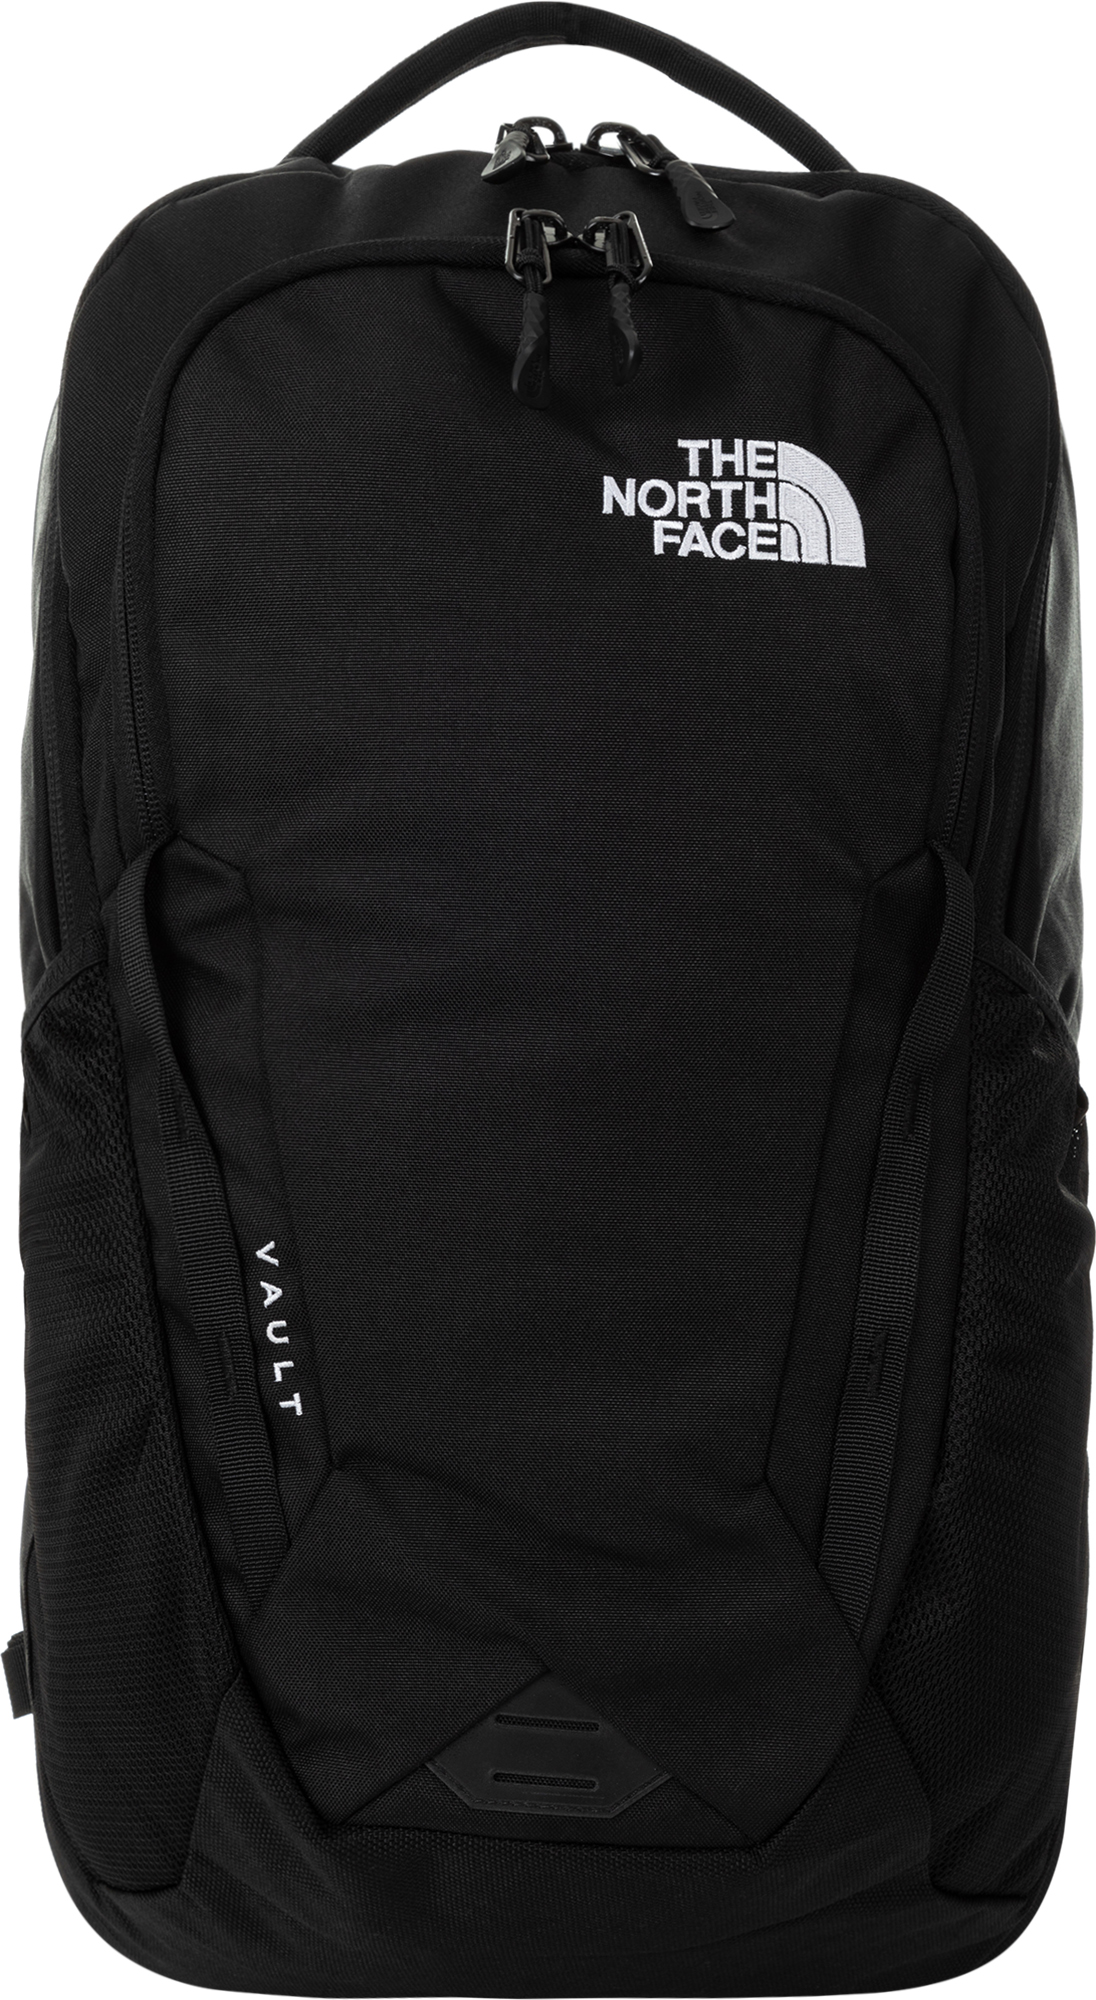 купить The North Face Рюкзак The North Face Vault недорого